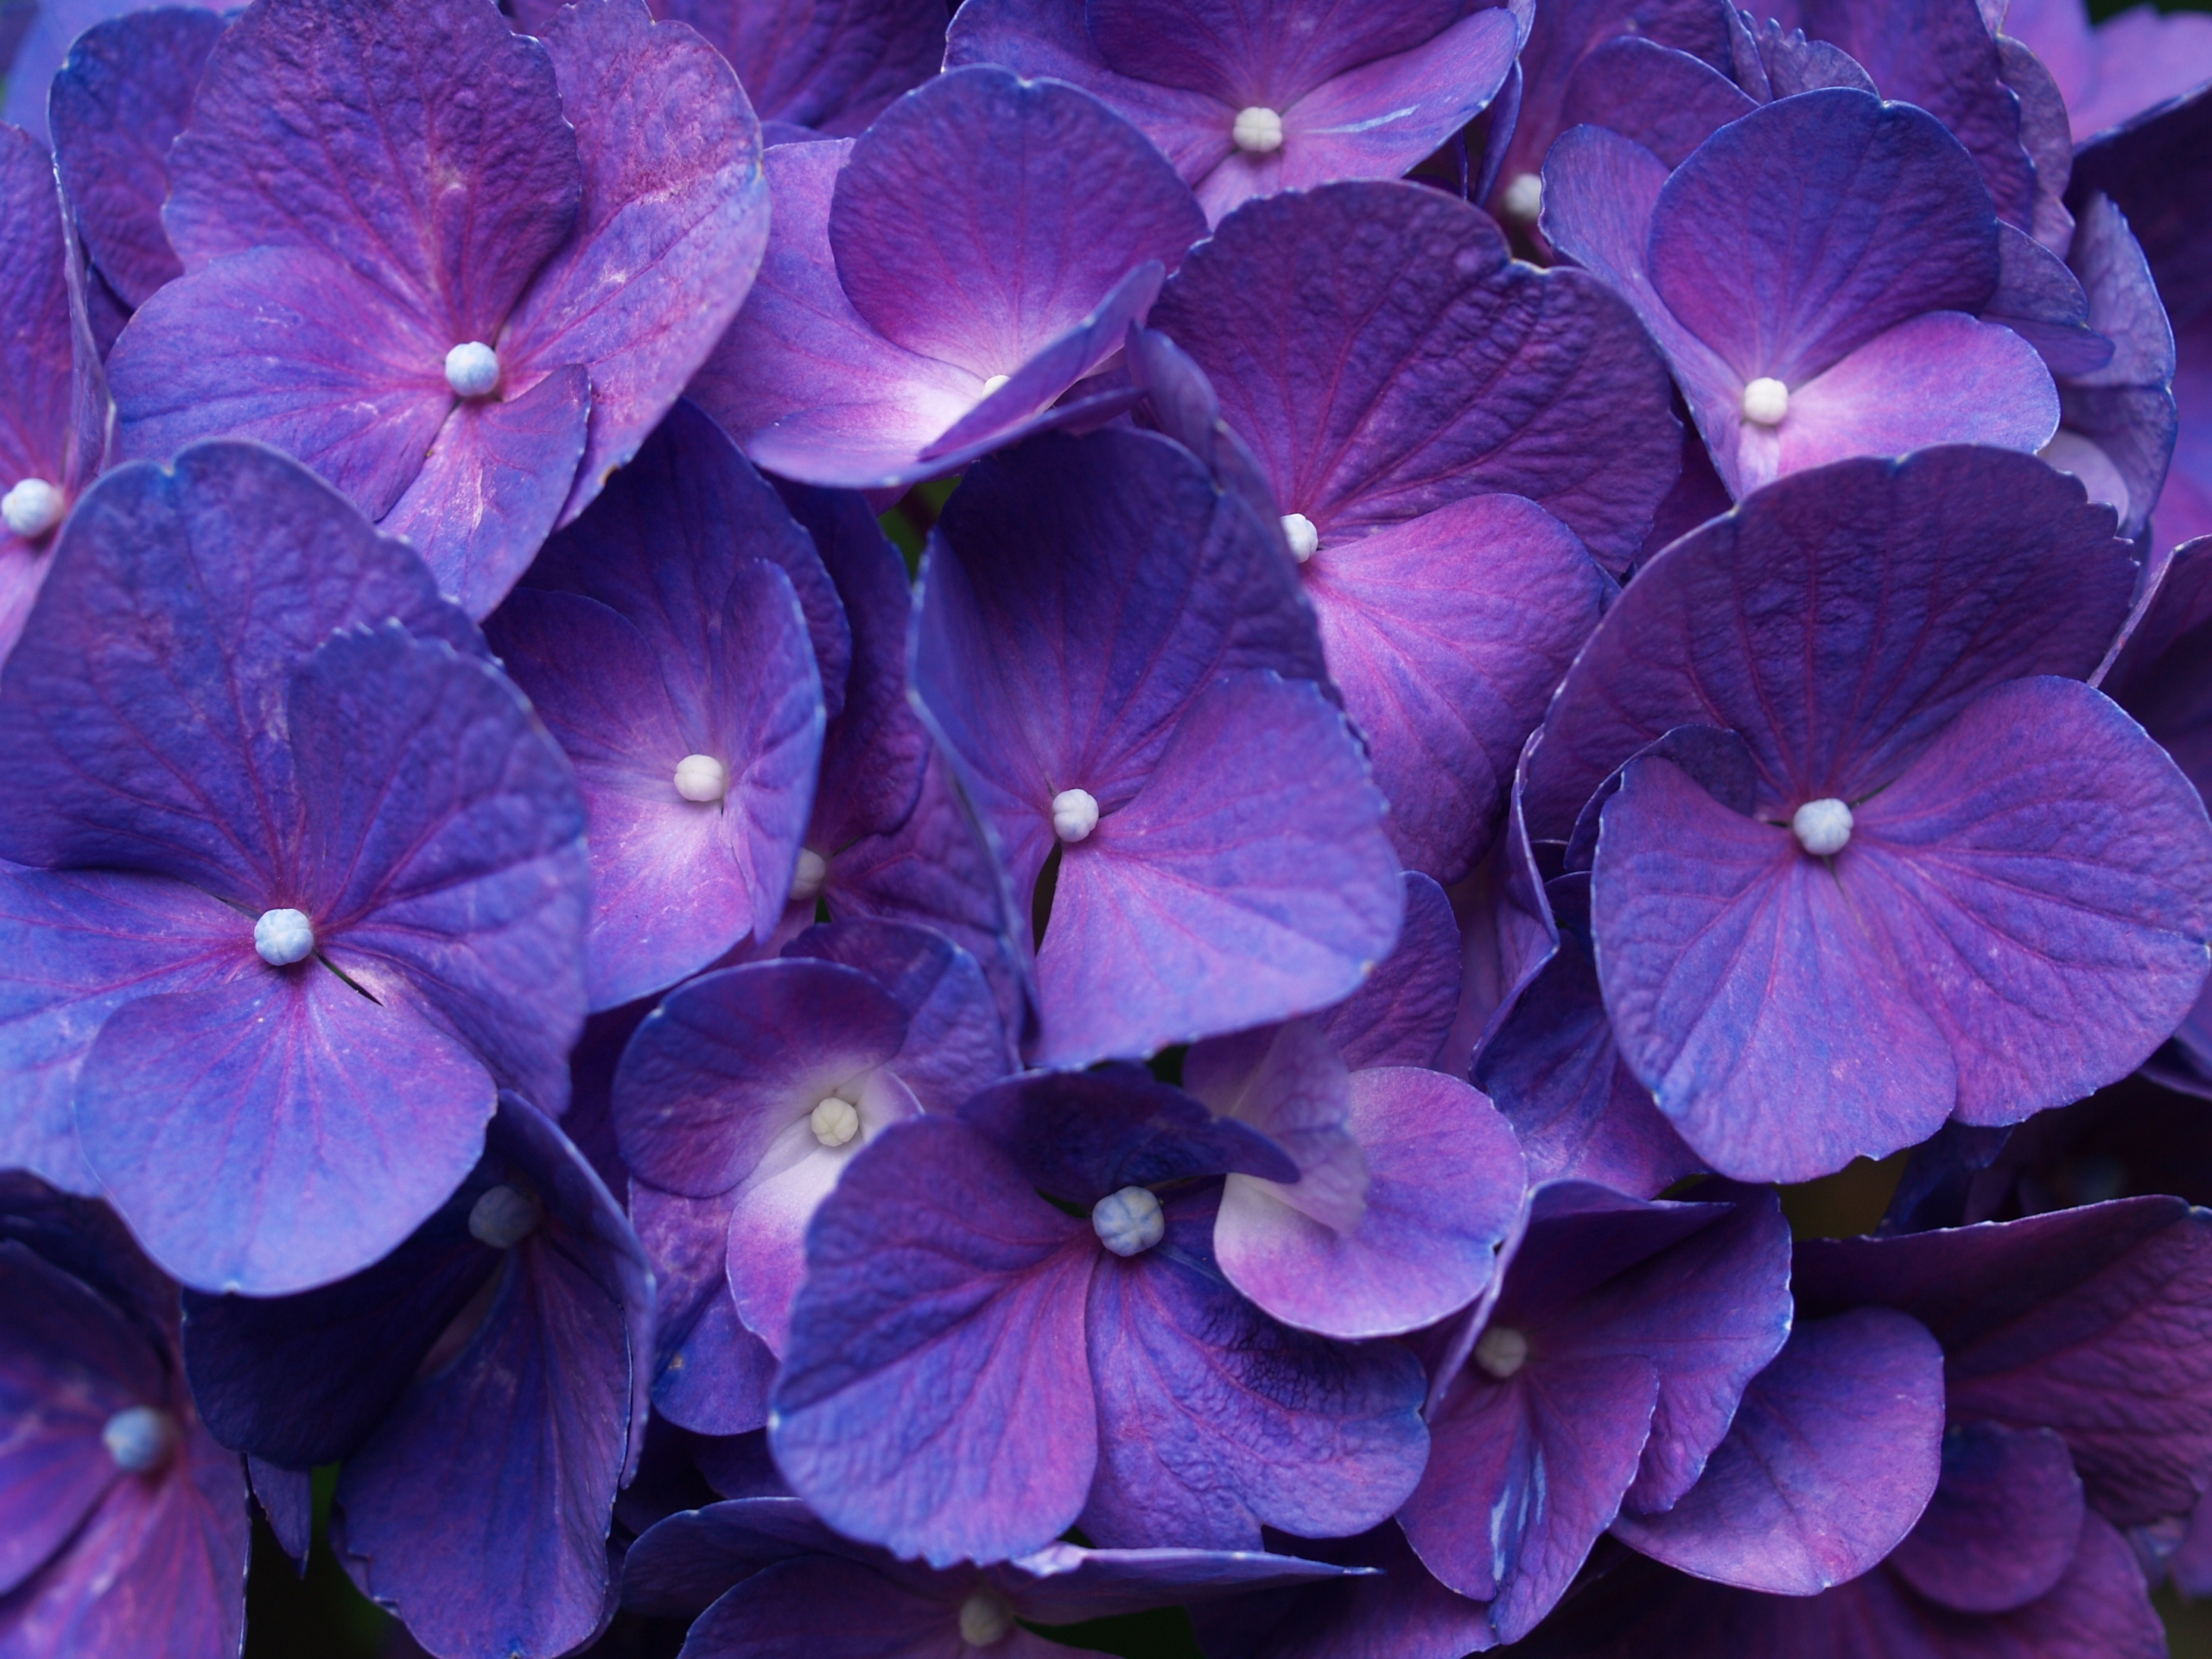 39 High Definition Purple Wallpaper Images for Download 2560x1920